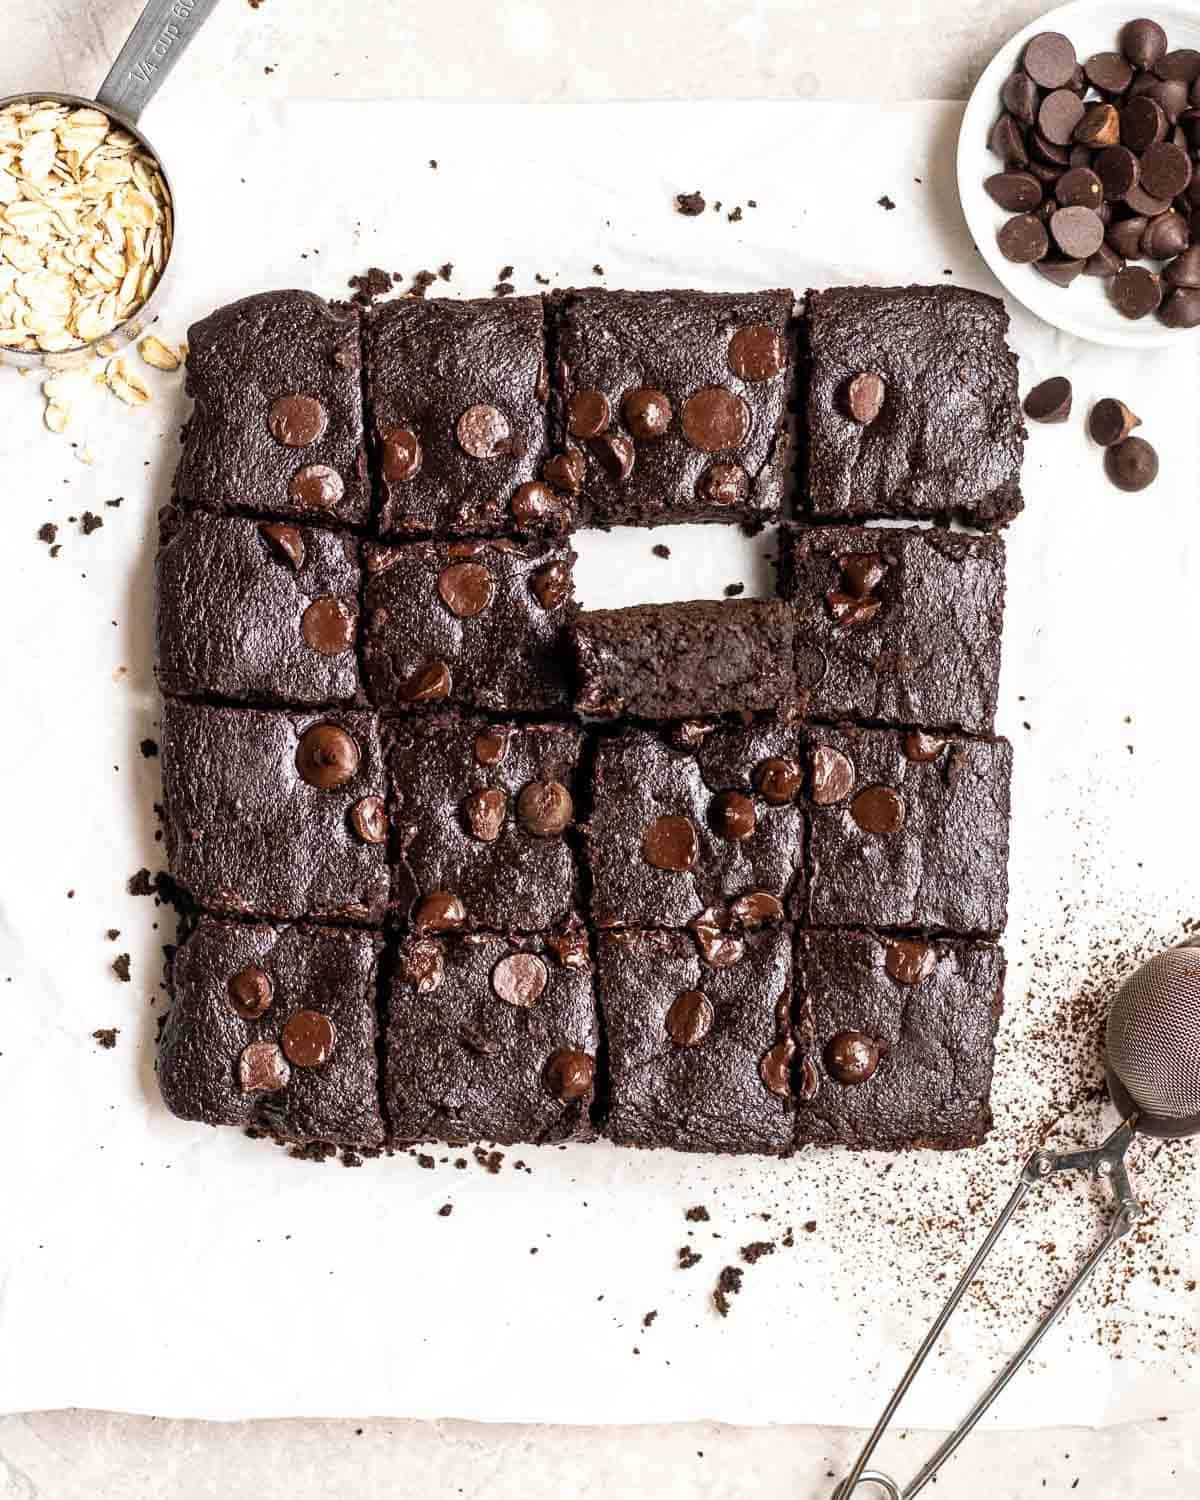 A tray of brownies on a parchment paper with chocolate chips, oats and a small colander beside.